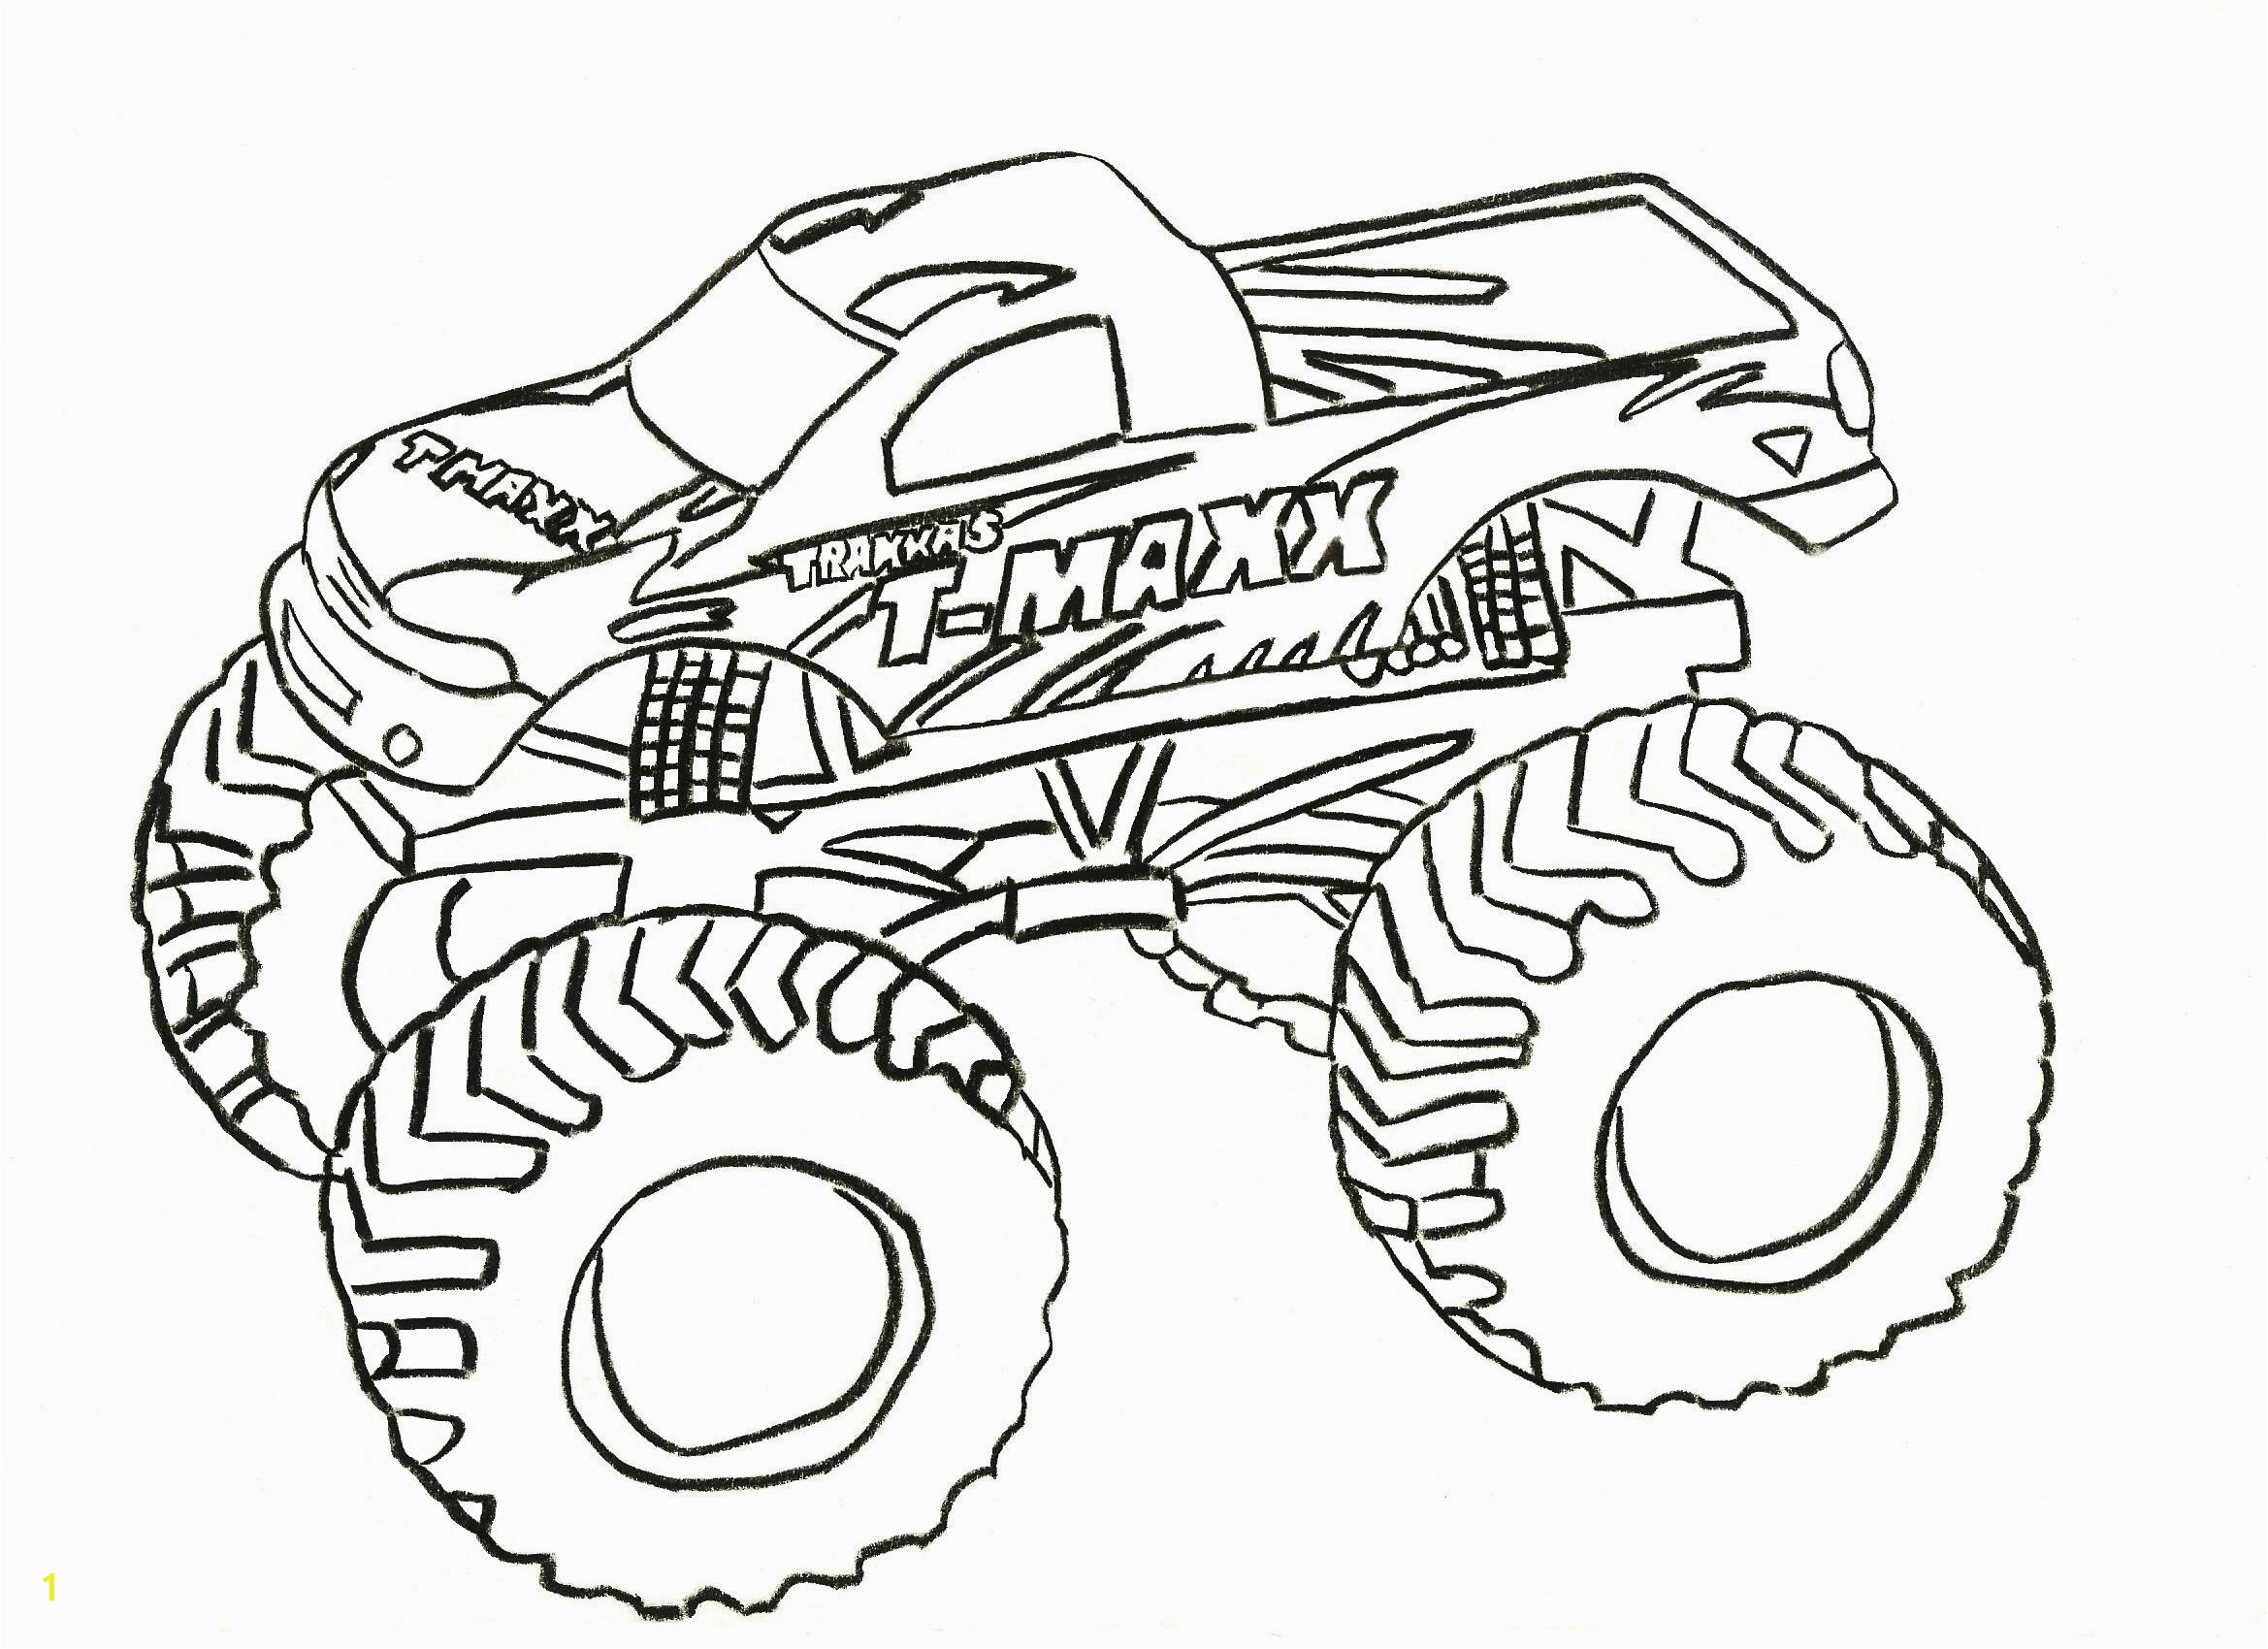 Race Truck Coloring Pages Best Truck Drawing for Kids at Getdrawings Race Truck Coloring